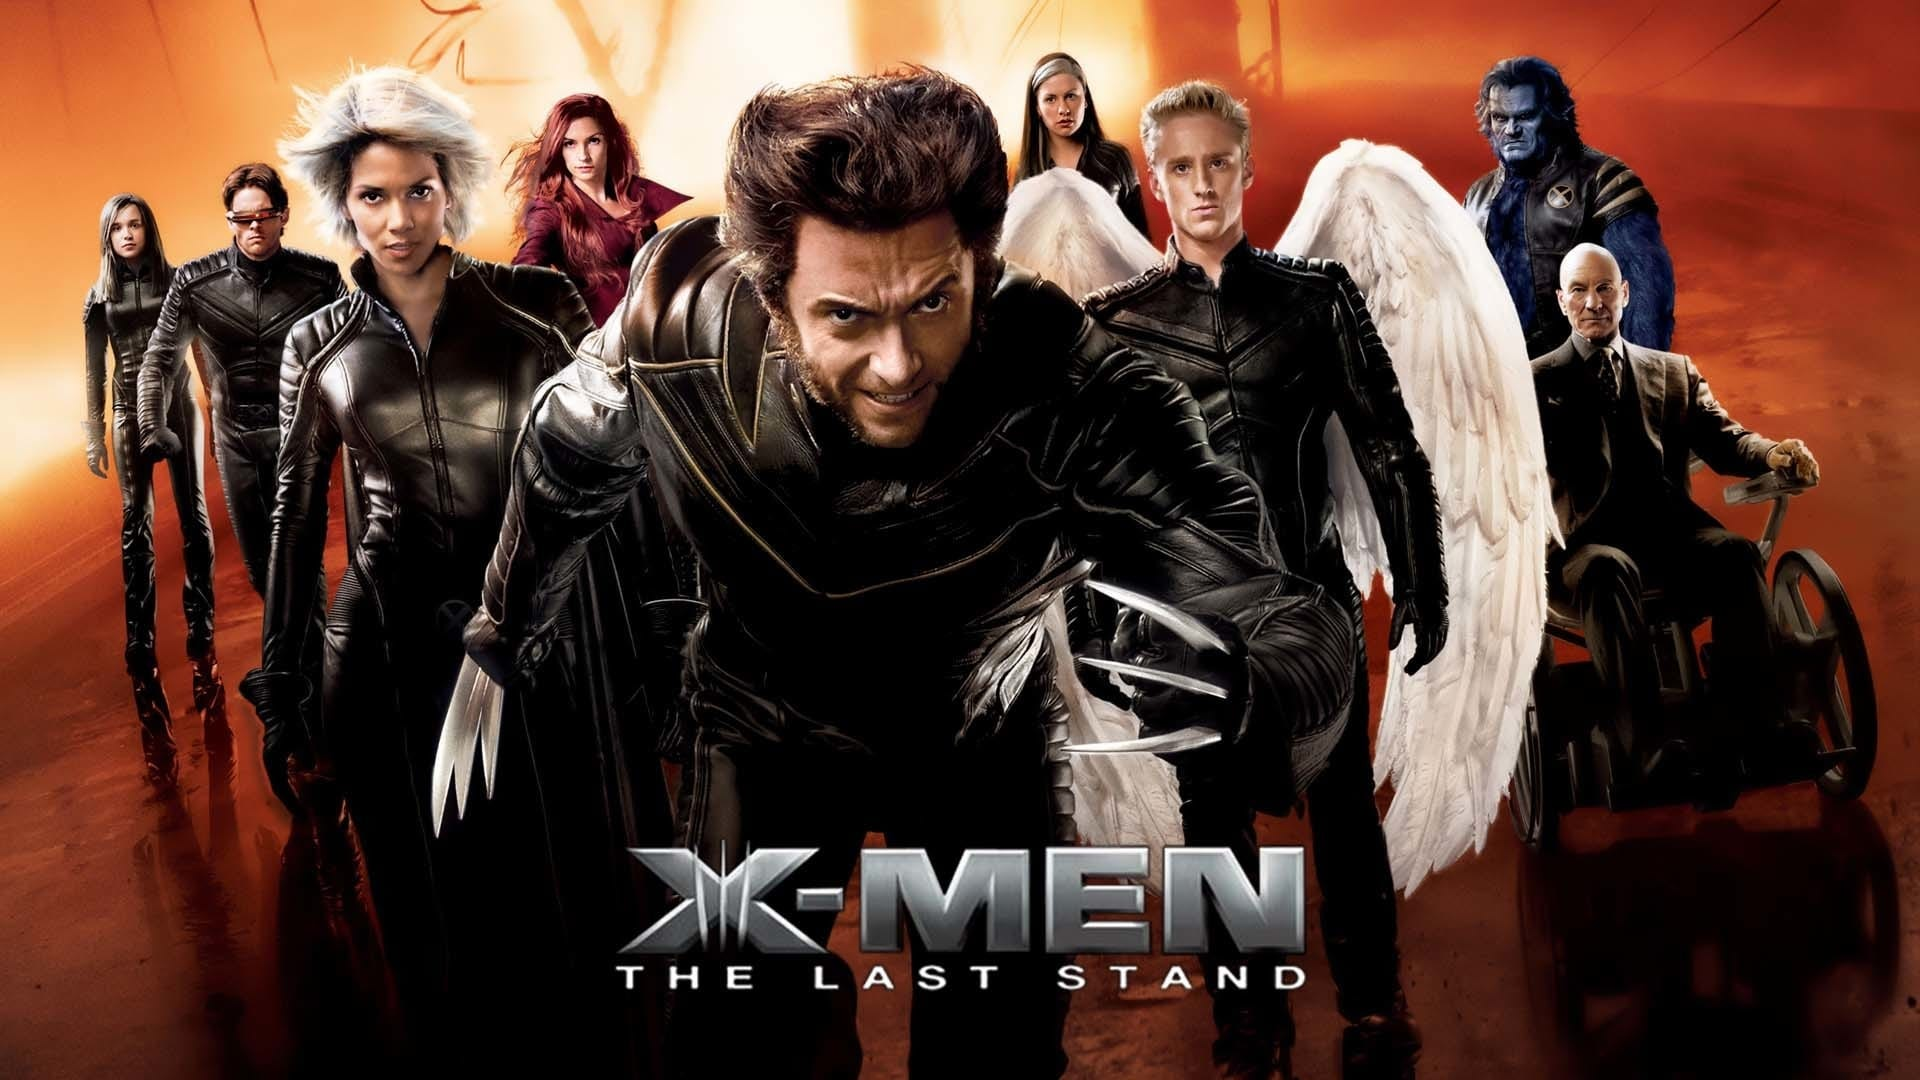 X-Men: The Last Stand ...